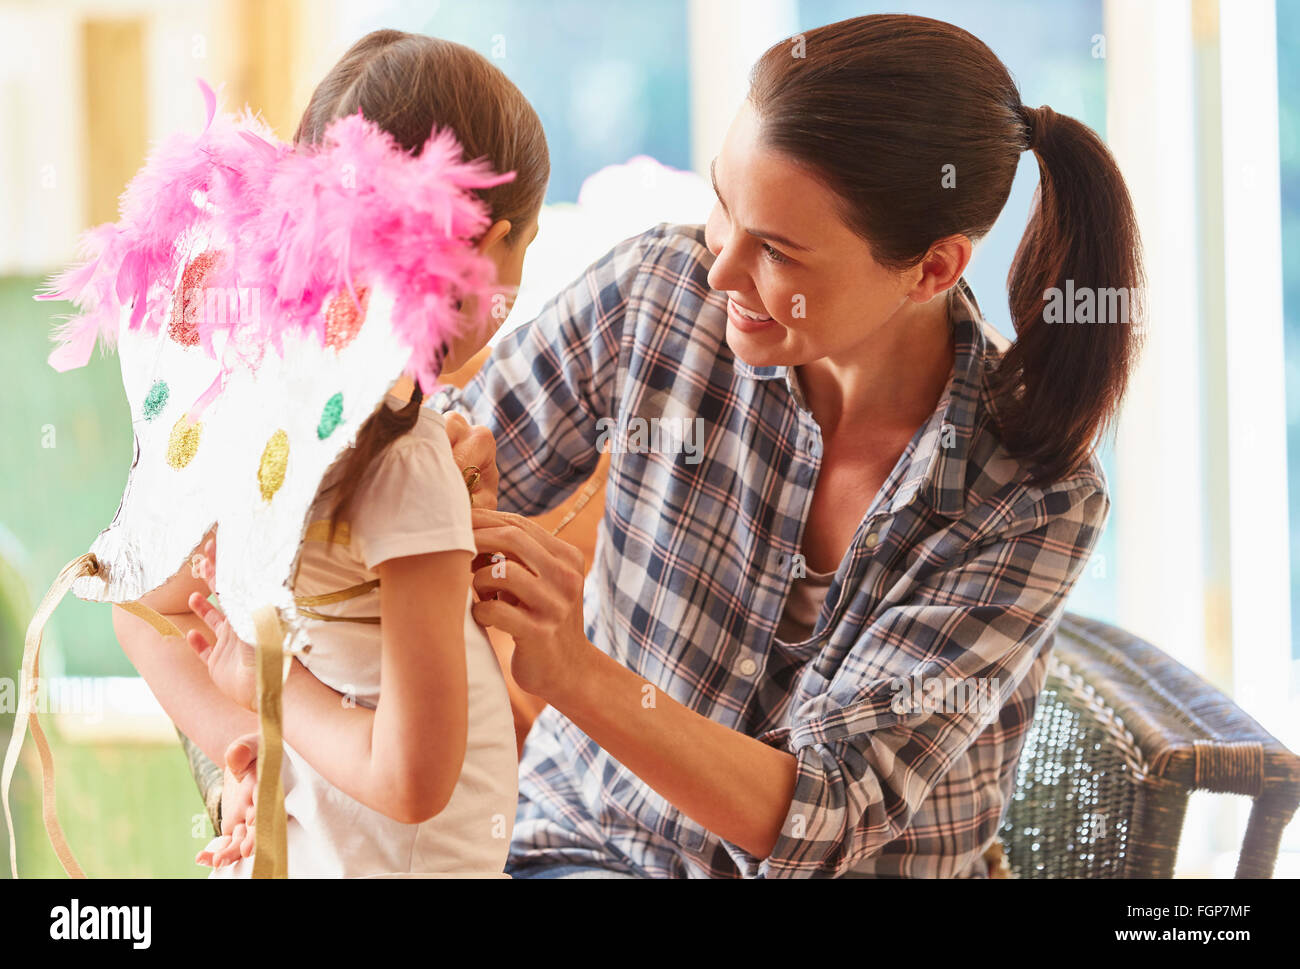 Mother fitting wings on daughter - Stock Image